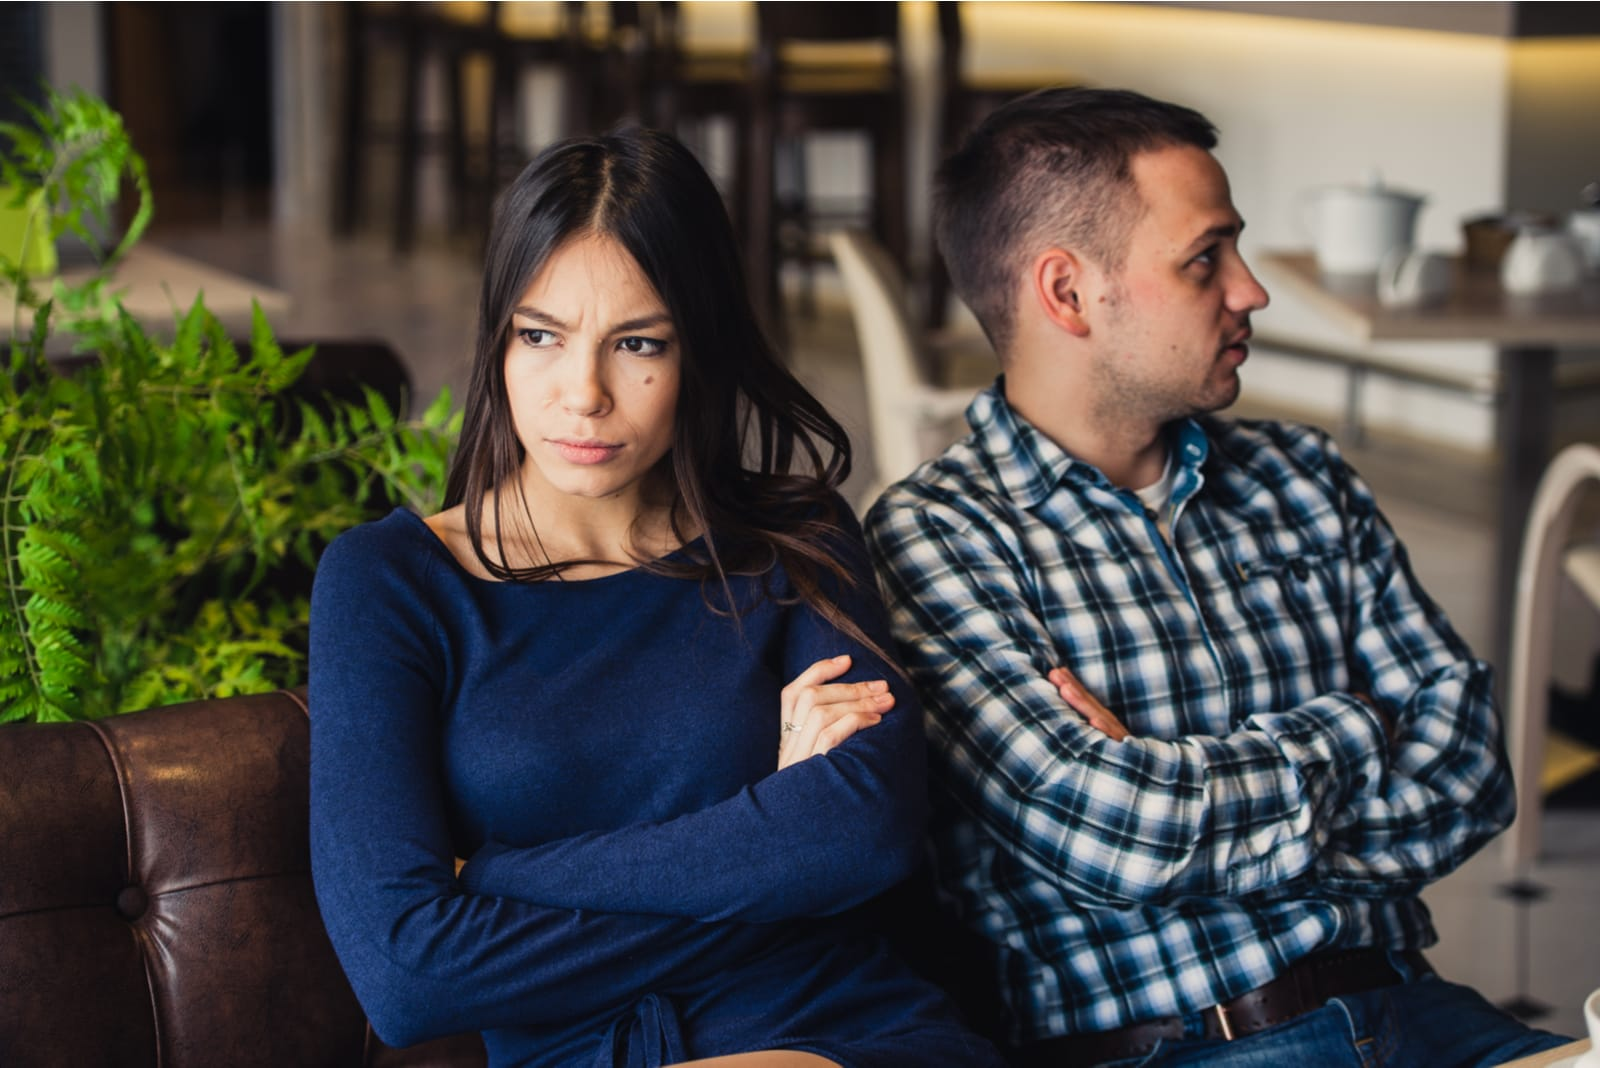 Crazy Wife? 8 Effective Ways To Successfully Deal With Her